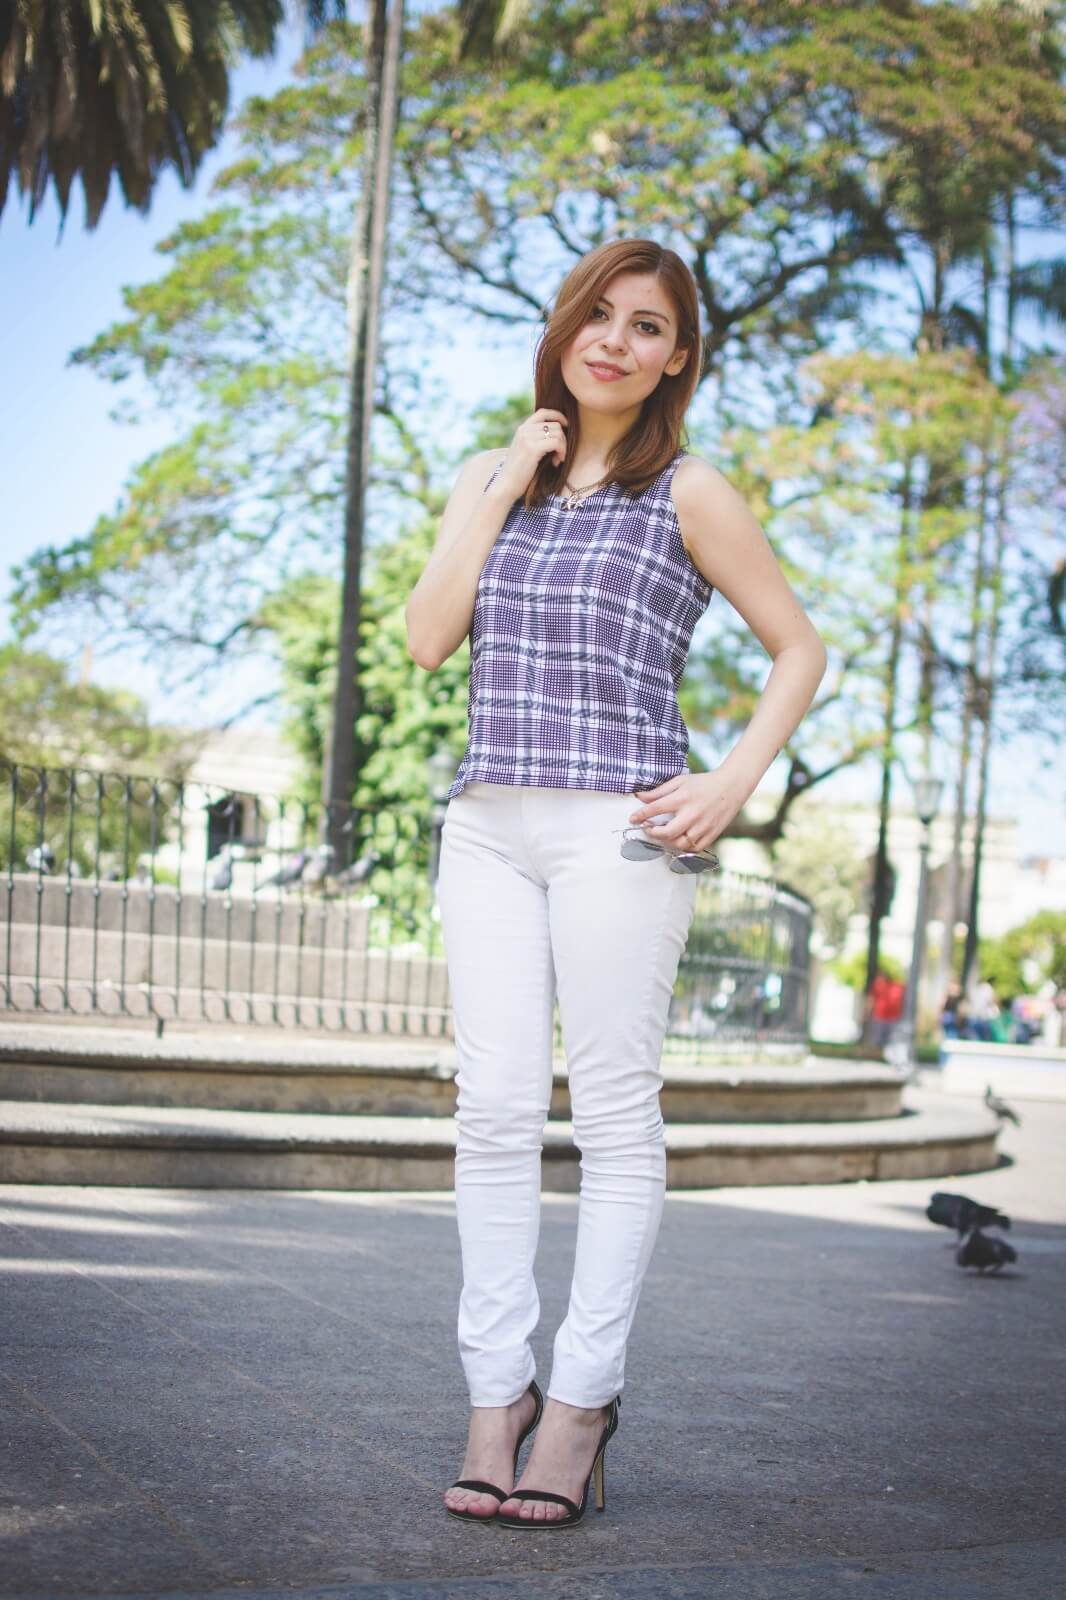 black-and-white-top-skinny-jeans-deborah-ferrero-style-by-deb-gamiss-sandals-streetstyle07